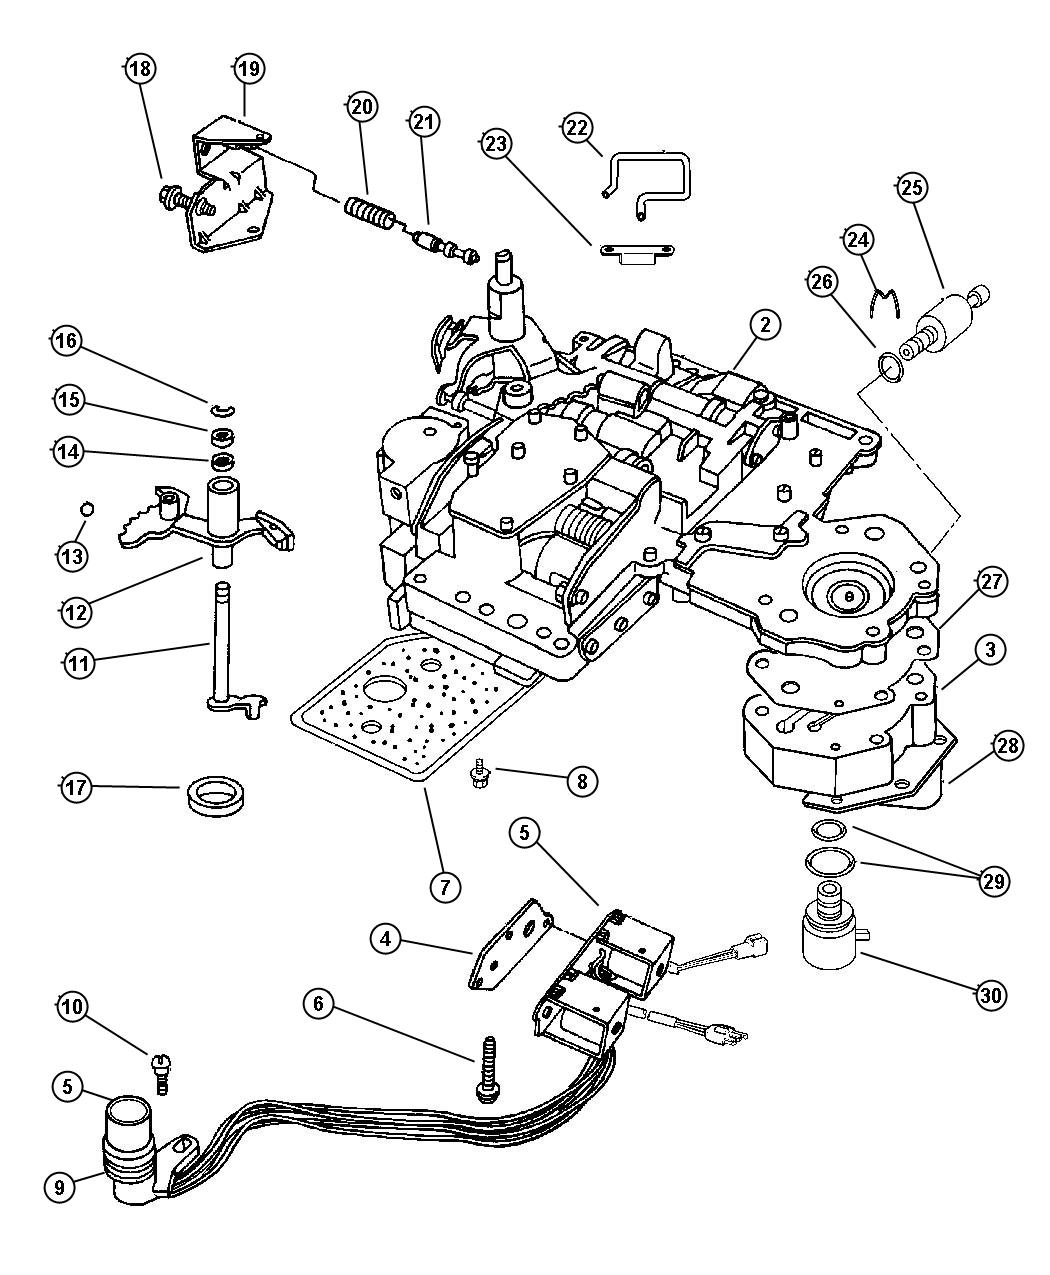 Service manual [Diagram Of How A 1997 Dodge Neon